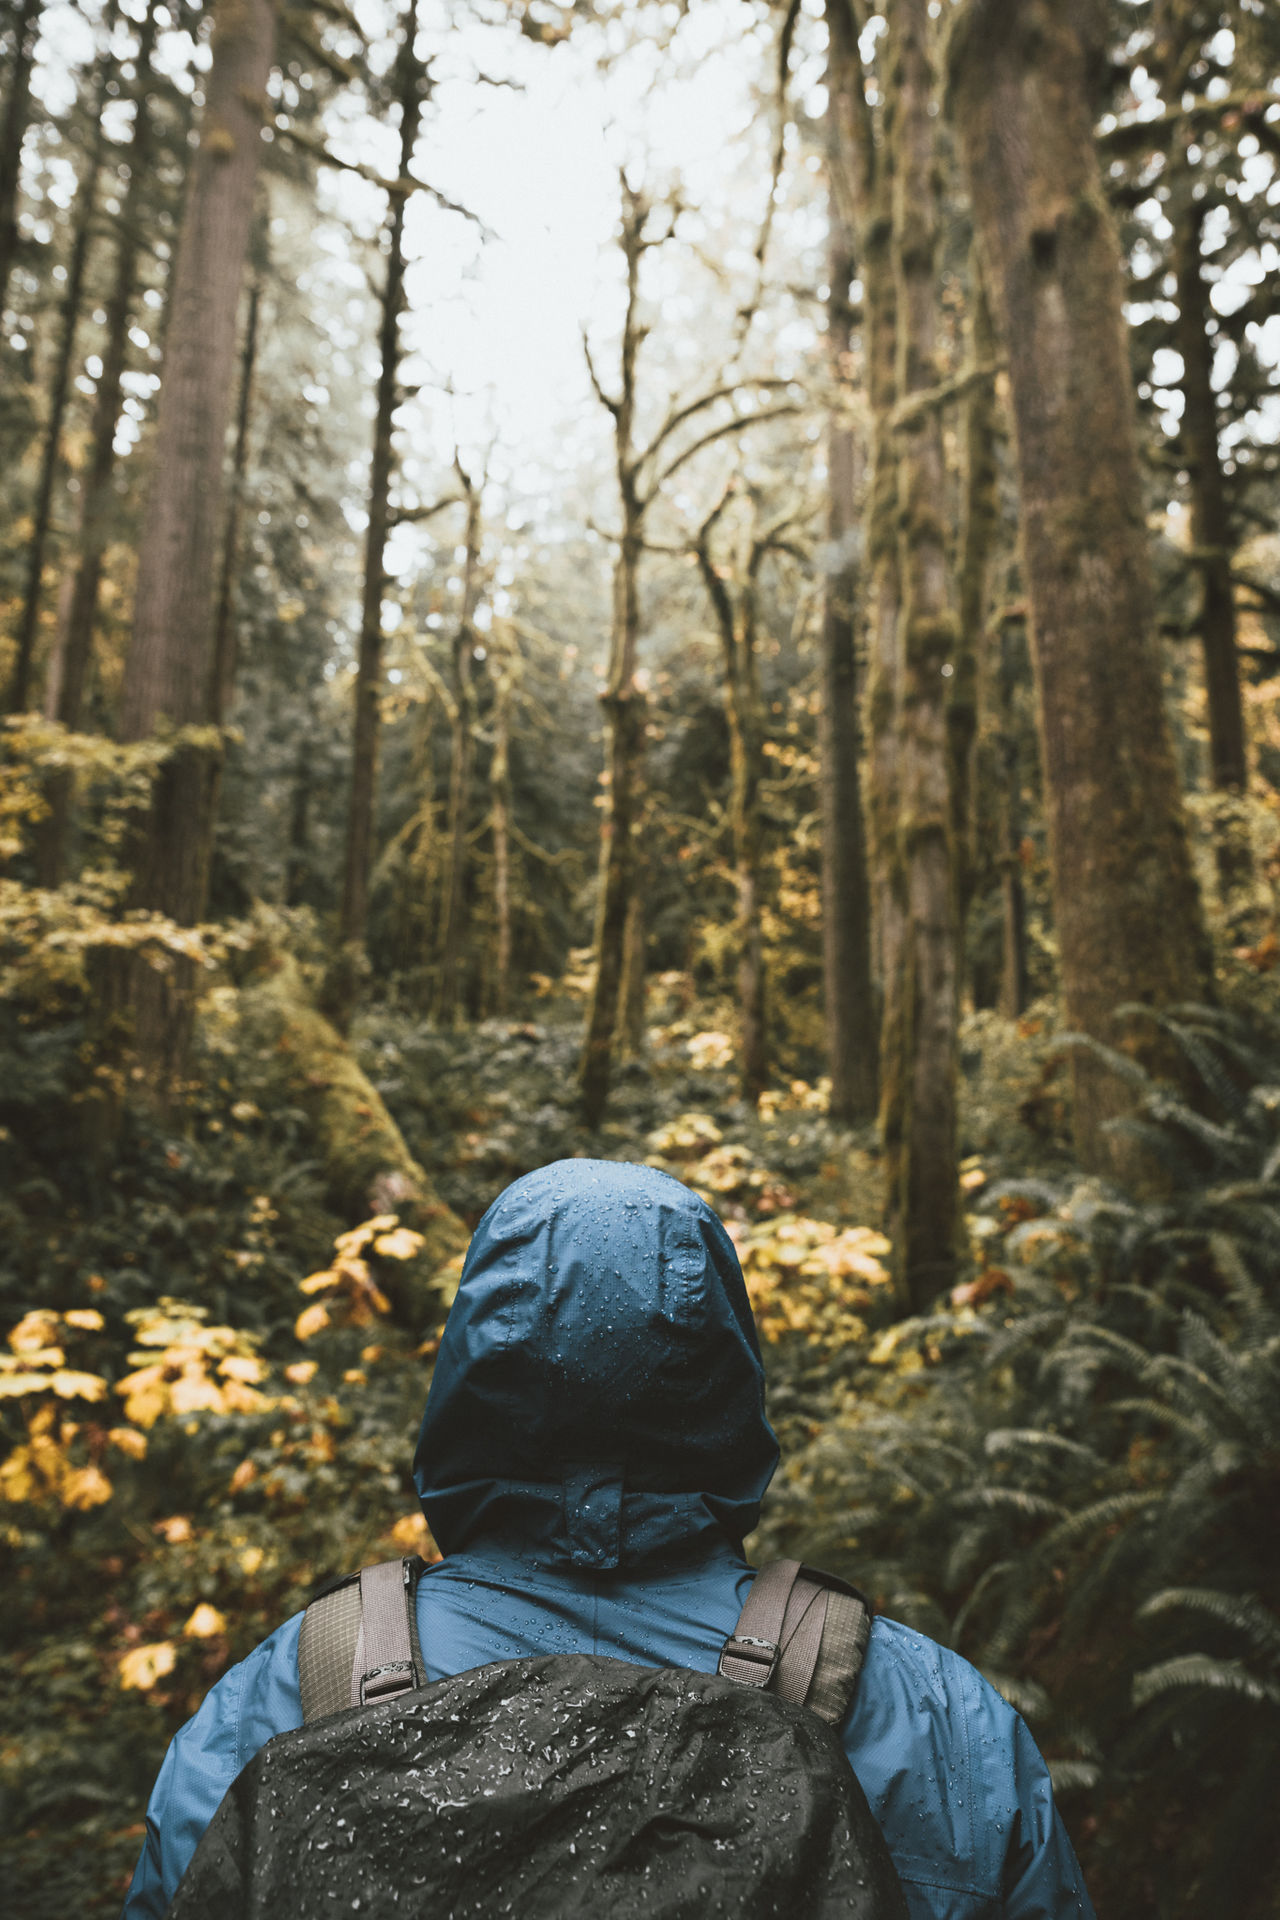 If only the whole world looked like this... Forest Tree Vertical One Person Nature WoodLand Cold Temperature Rear View Leisure Activity Warm Clothing People Hiking Winter Environment Lifestyles Rain Forest Wilderness Scenics Beauty In Nature Tranquil Scene Person Outdoors